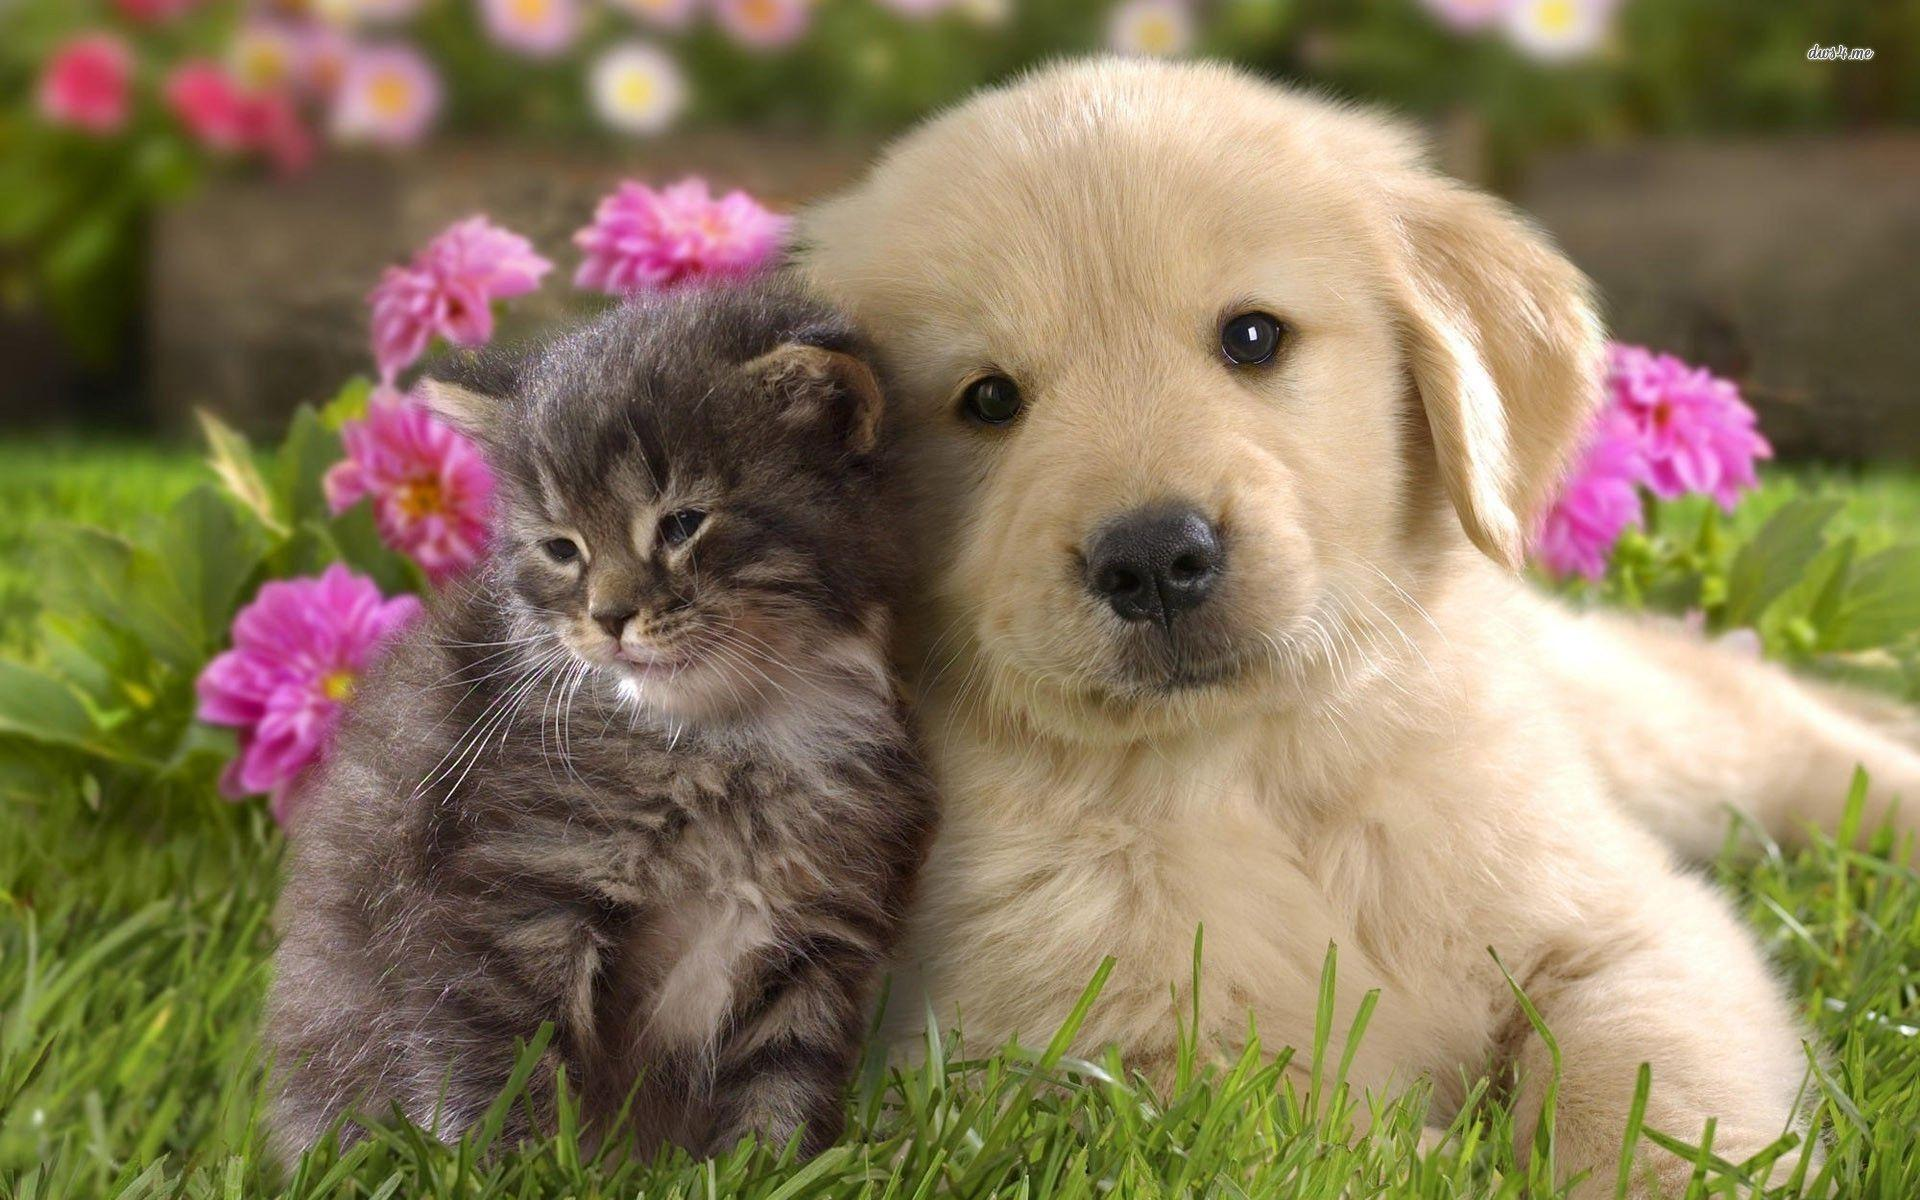 Best Puppies Wallpapers in High Quality, Puppies Backgrounds